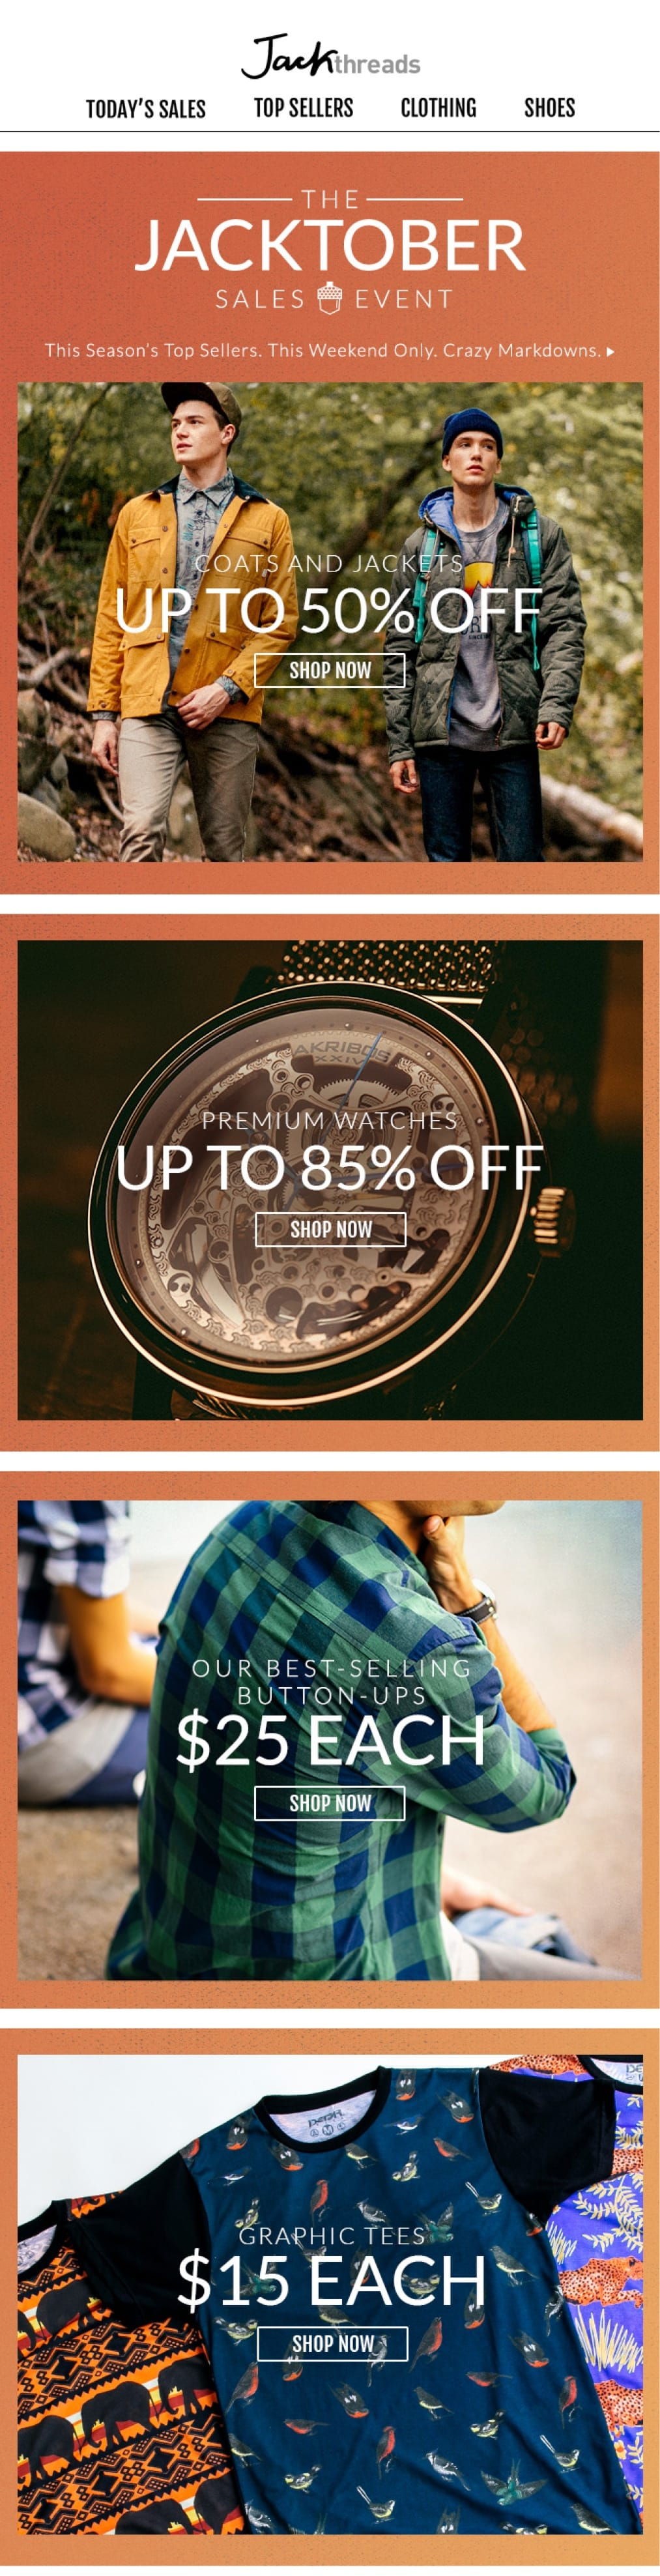 promotional email example jackthreads (sale email)